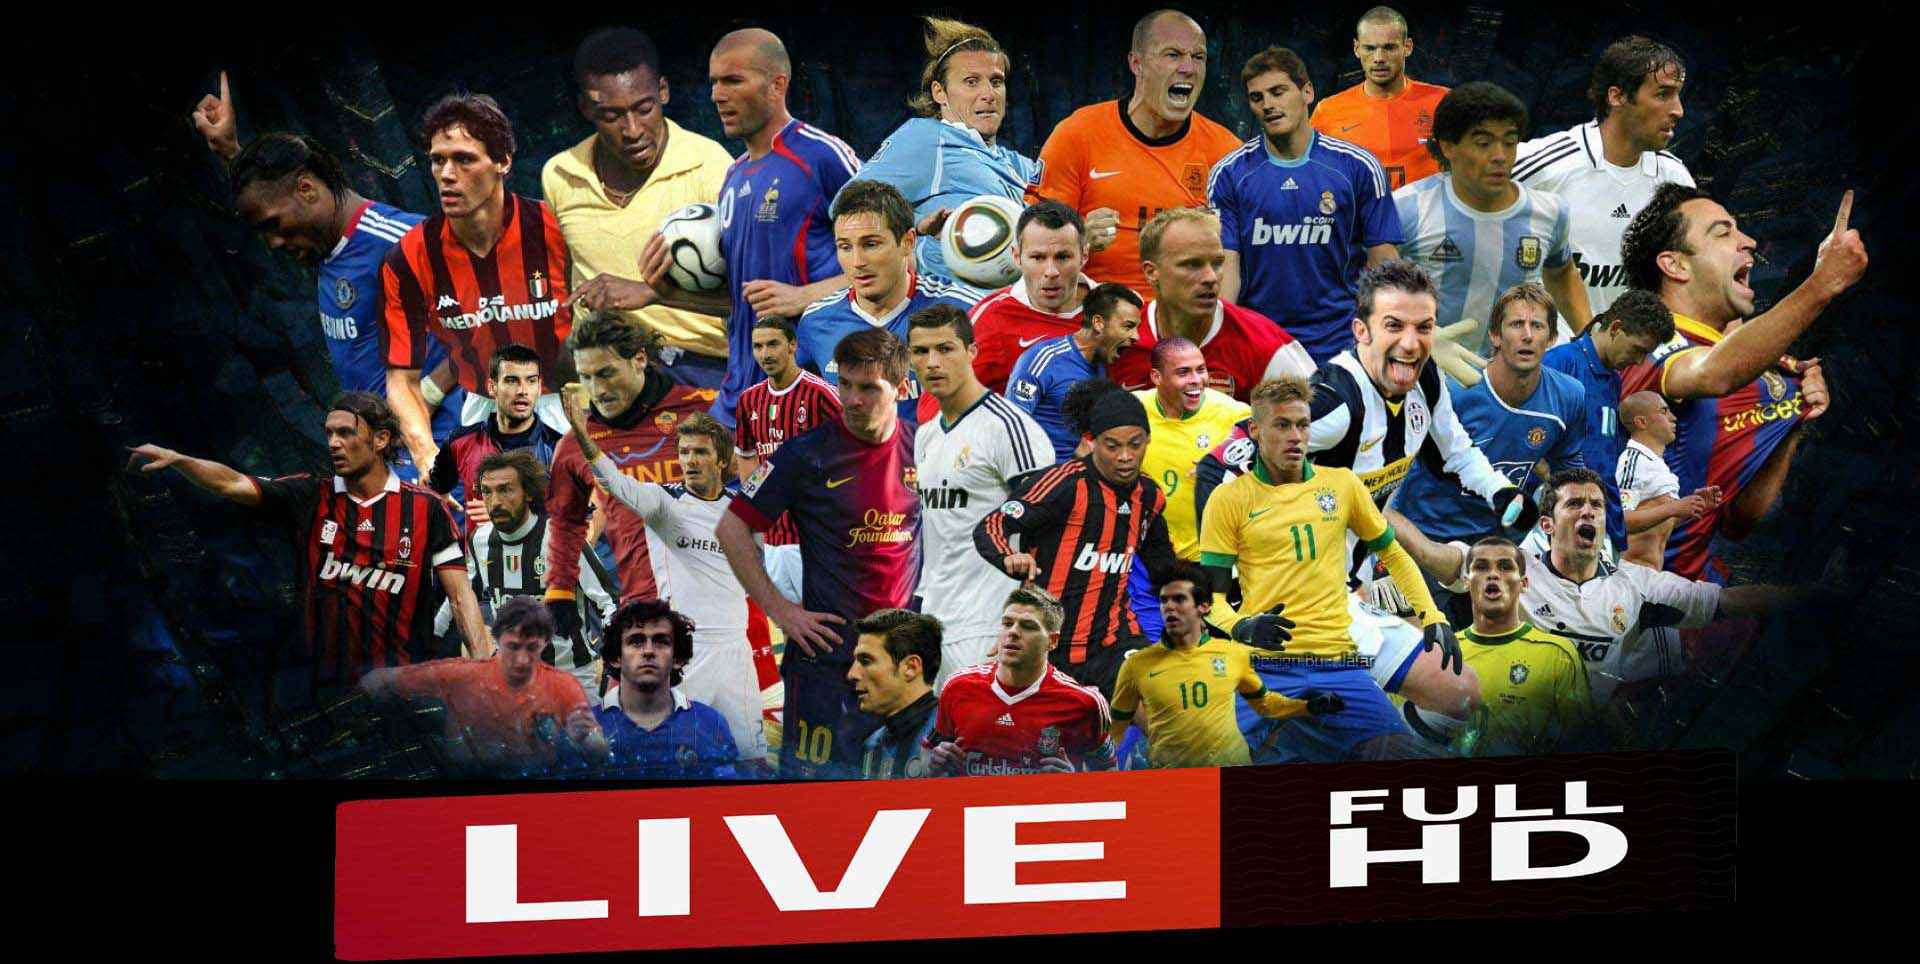 Juventus vs Real Madrid Live Online